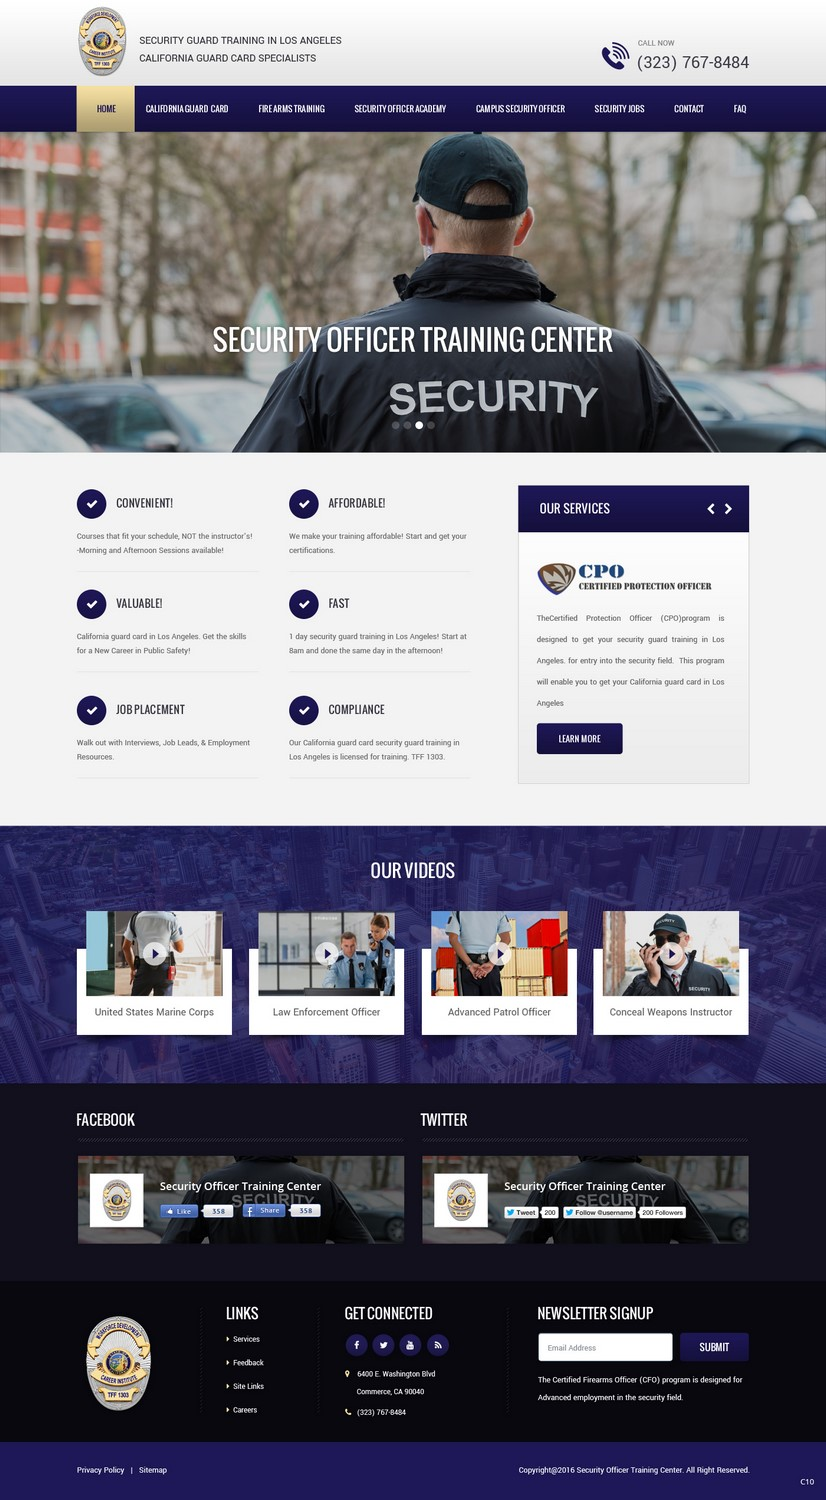 Conservative Modern Security Web Design For Public Safety Institute By Pb Design 11380857